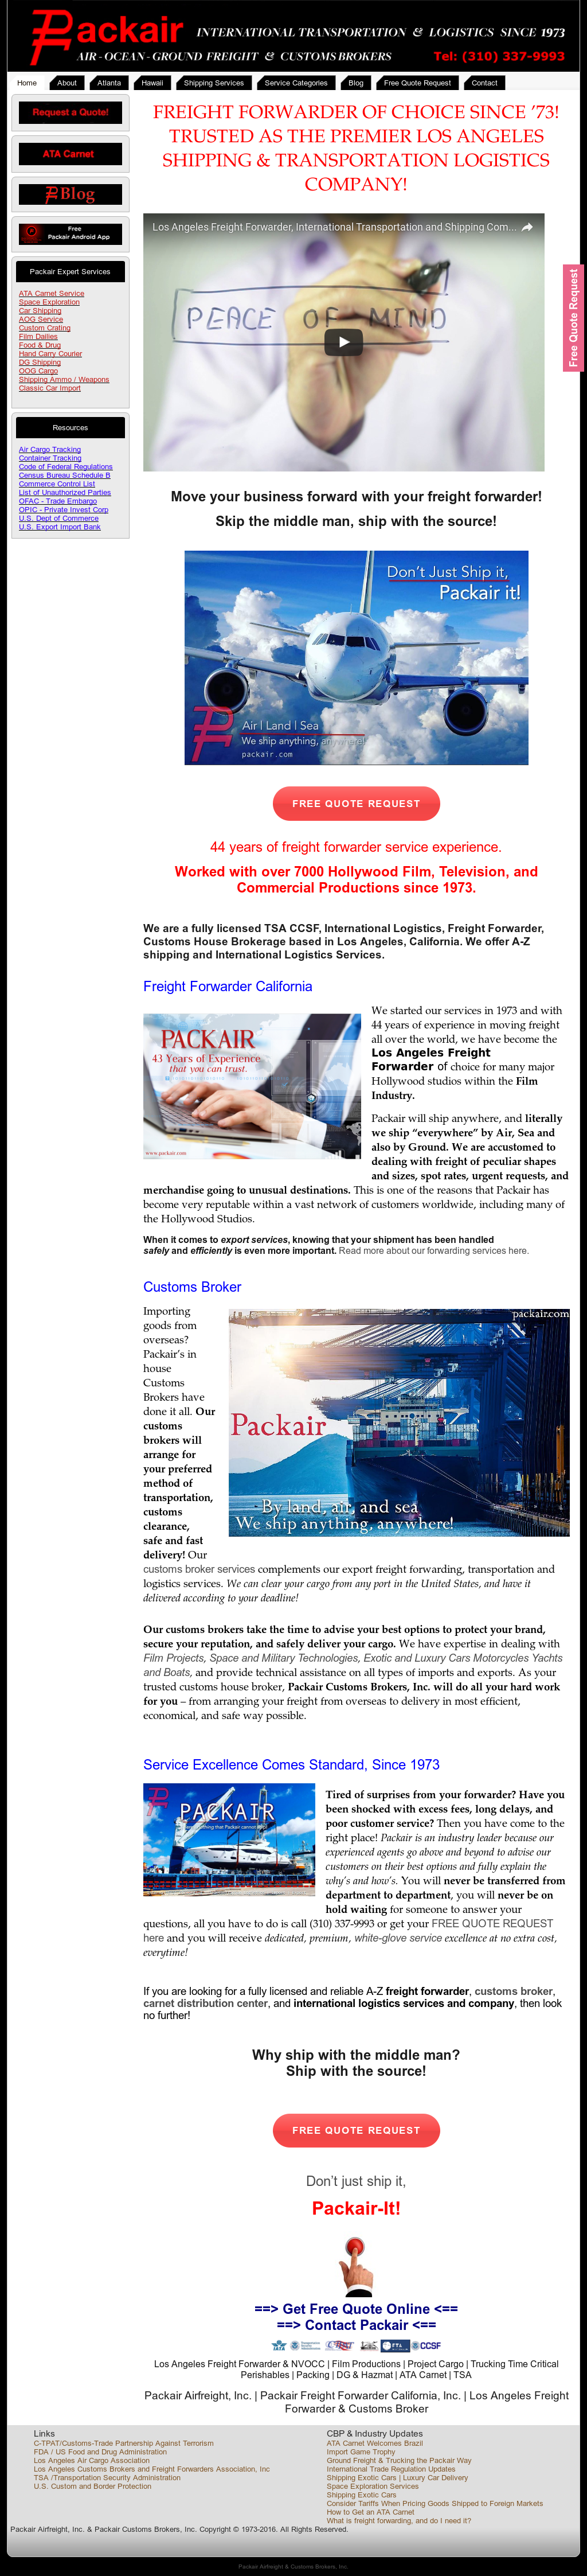 Packair Competitors, Revenue and Employees - Owler Company